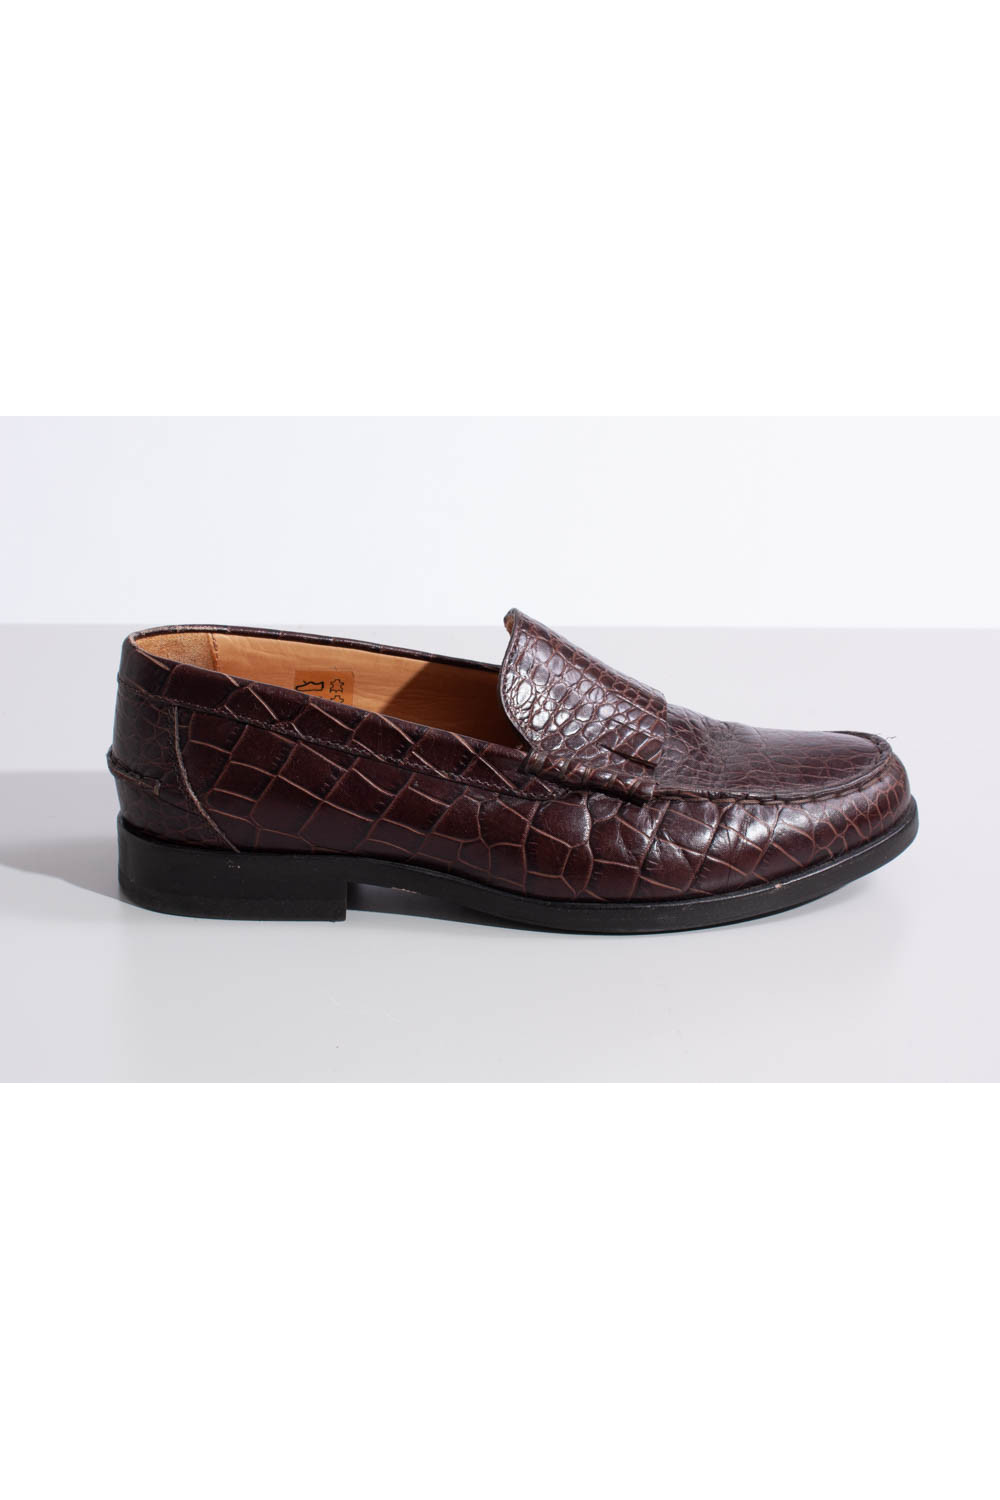 Paul Smith, Loafers, Stl 39